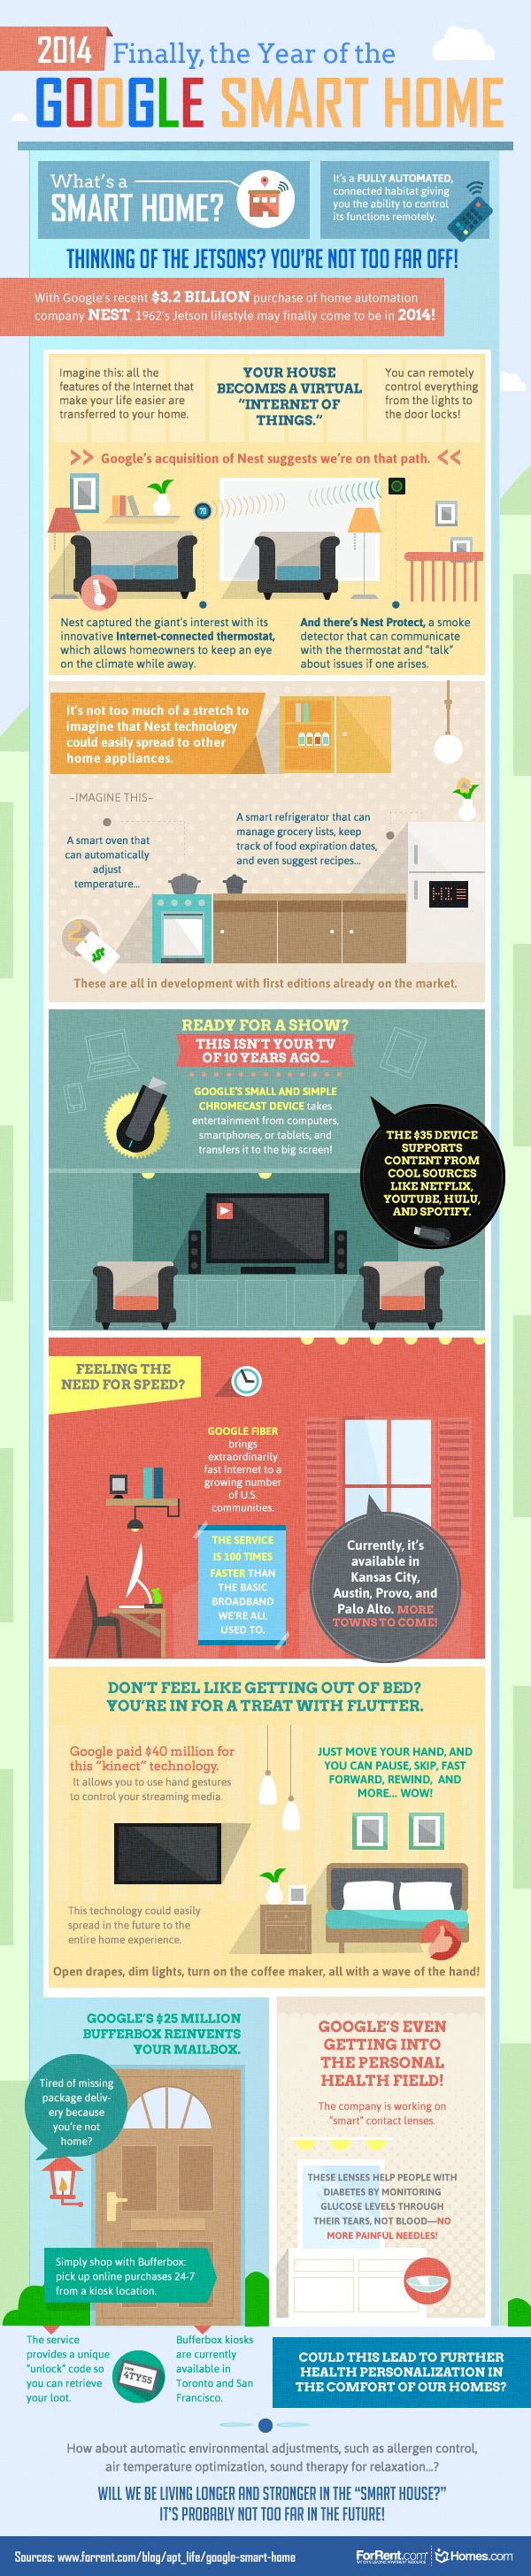 The Google Smart Home #infographic #SmartHome #Google #Technology